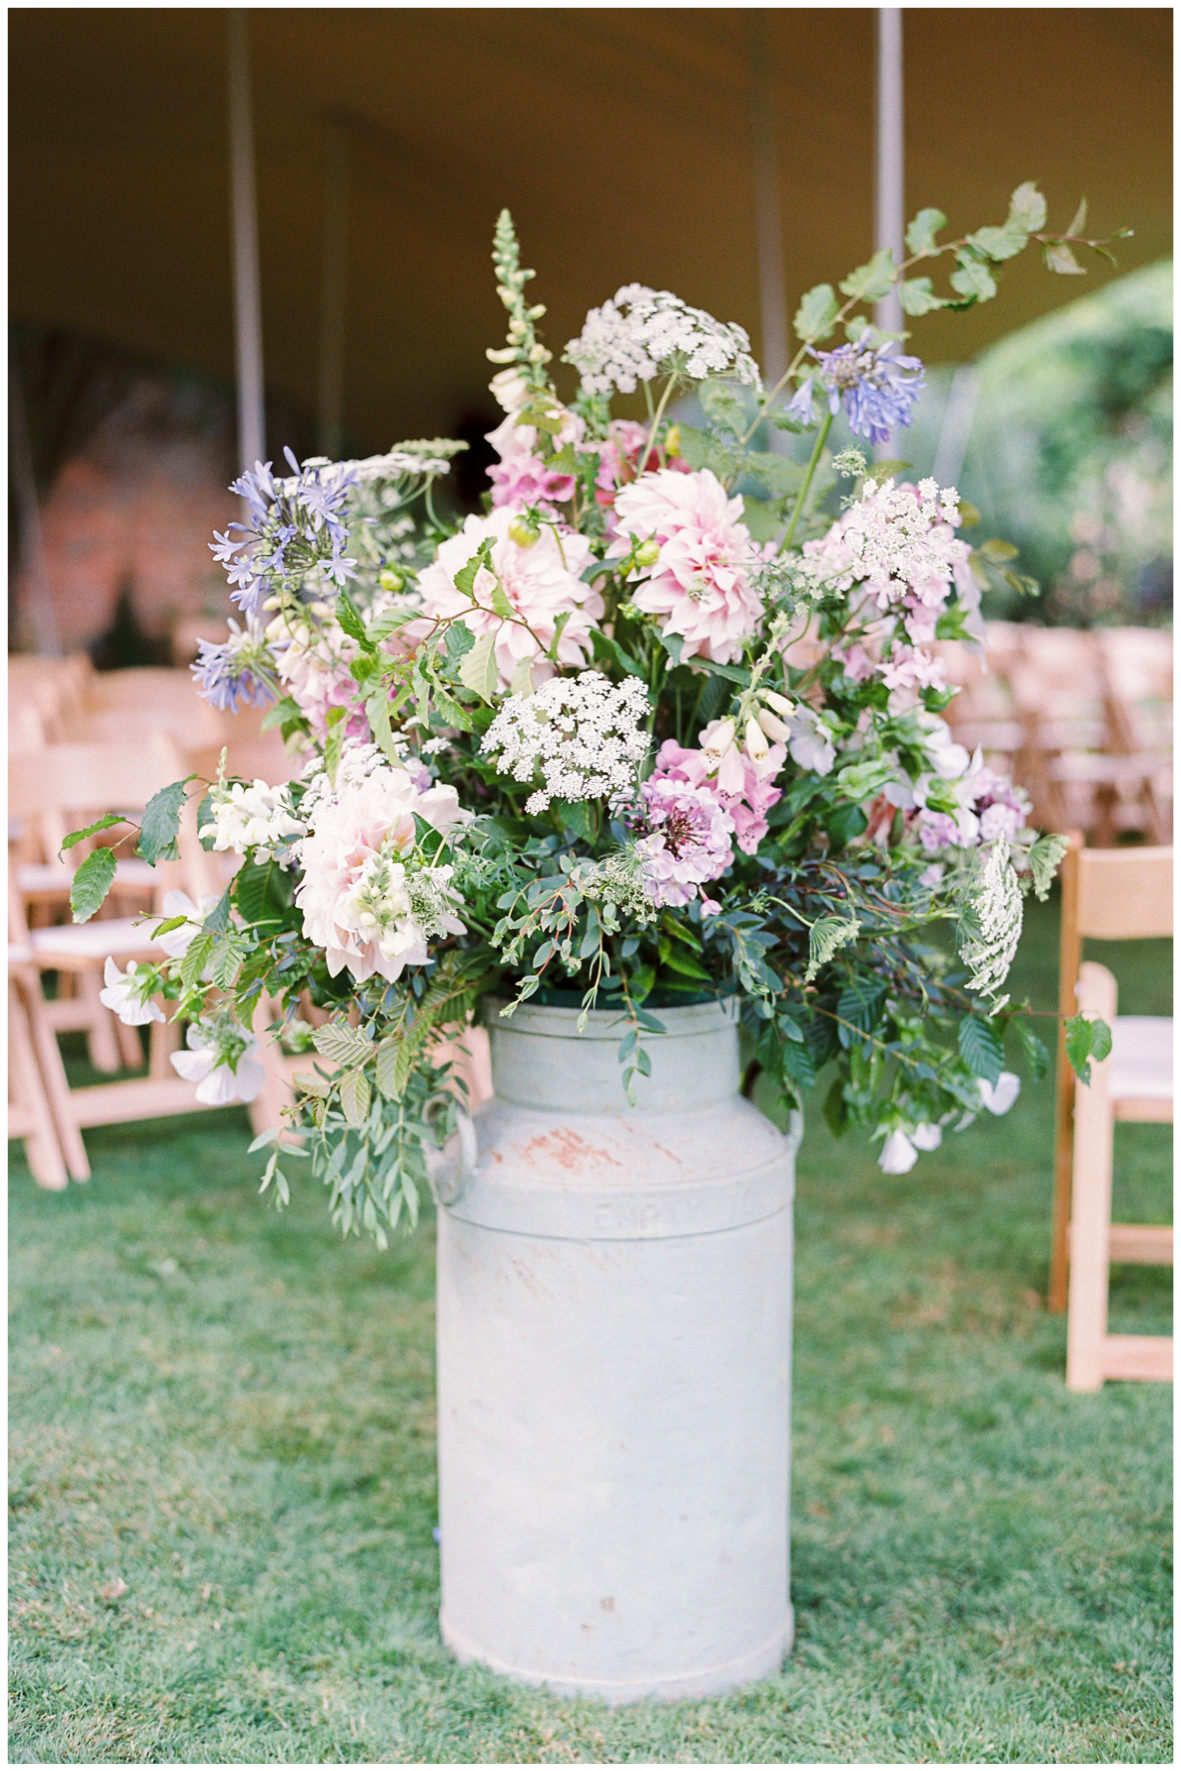 Lucy Davenport Photography, Green and Gorgeous, floral details, floral tips, milk urn